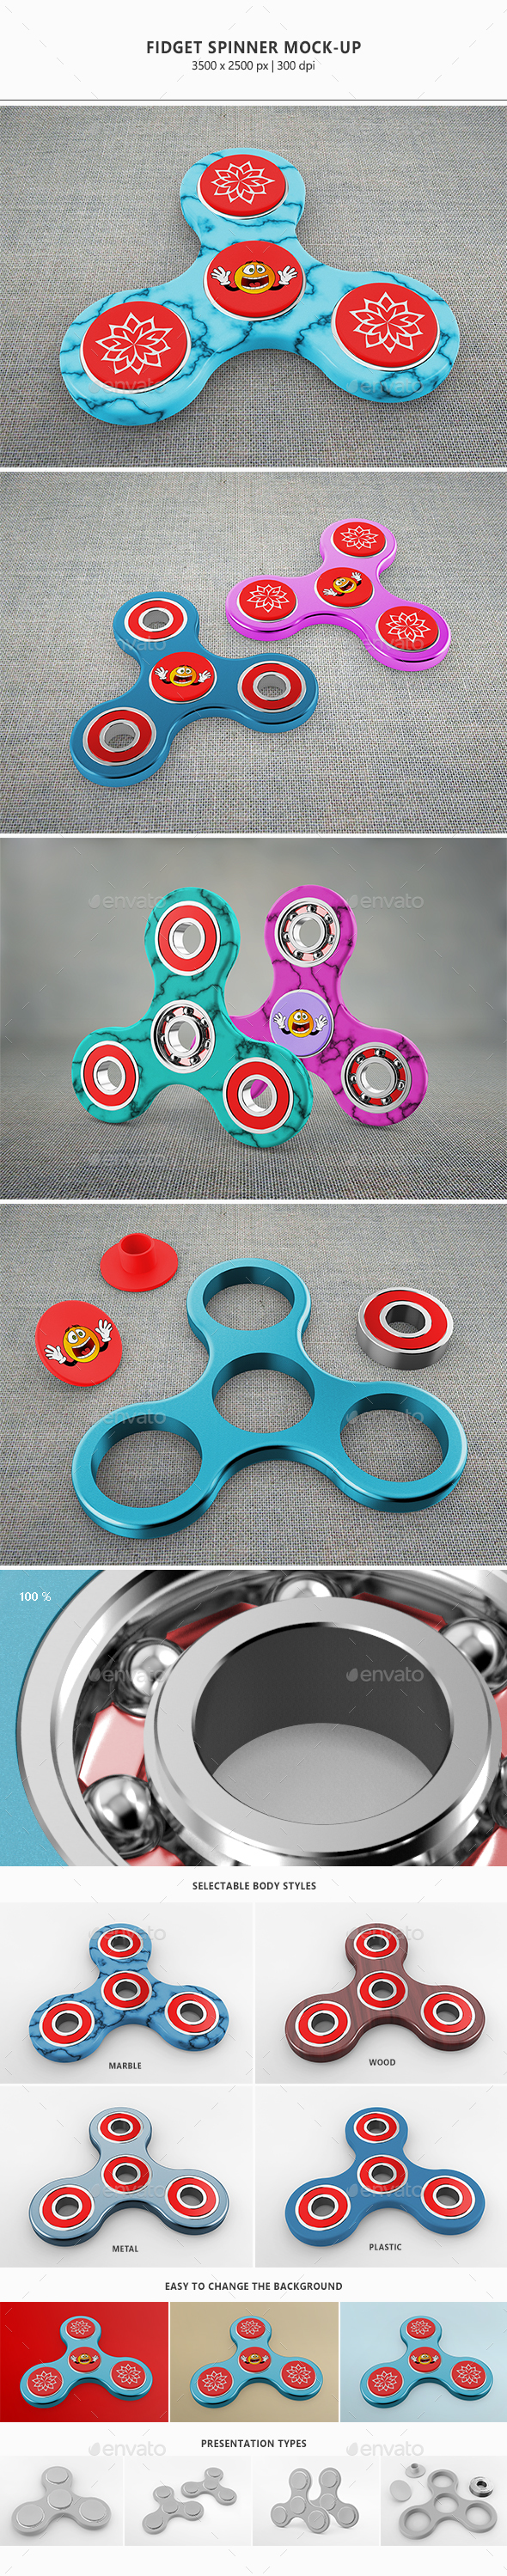 Fidget Spinner Mock-Up - Miscellaneous Product Mock-Ups